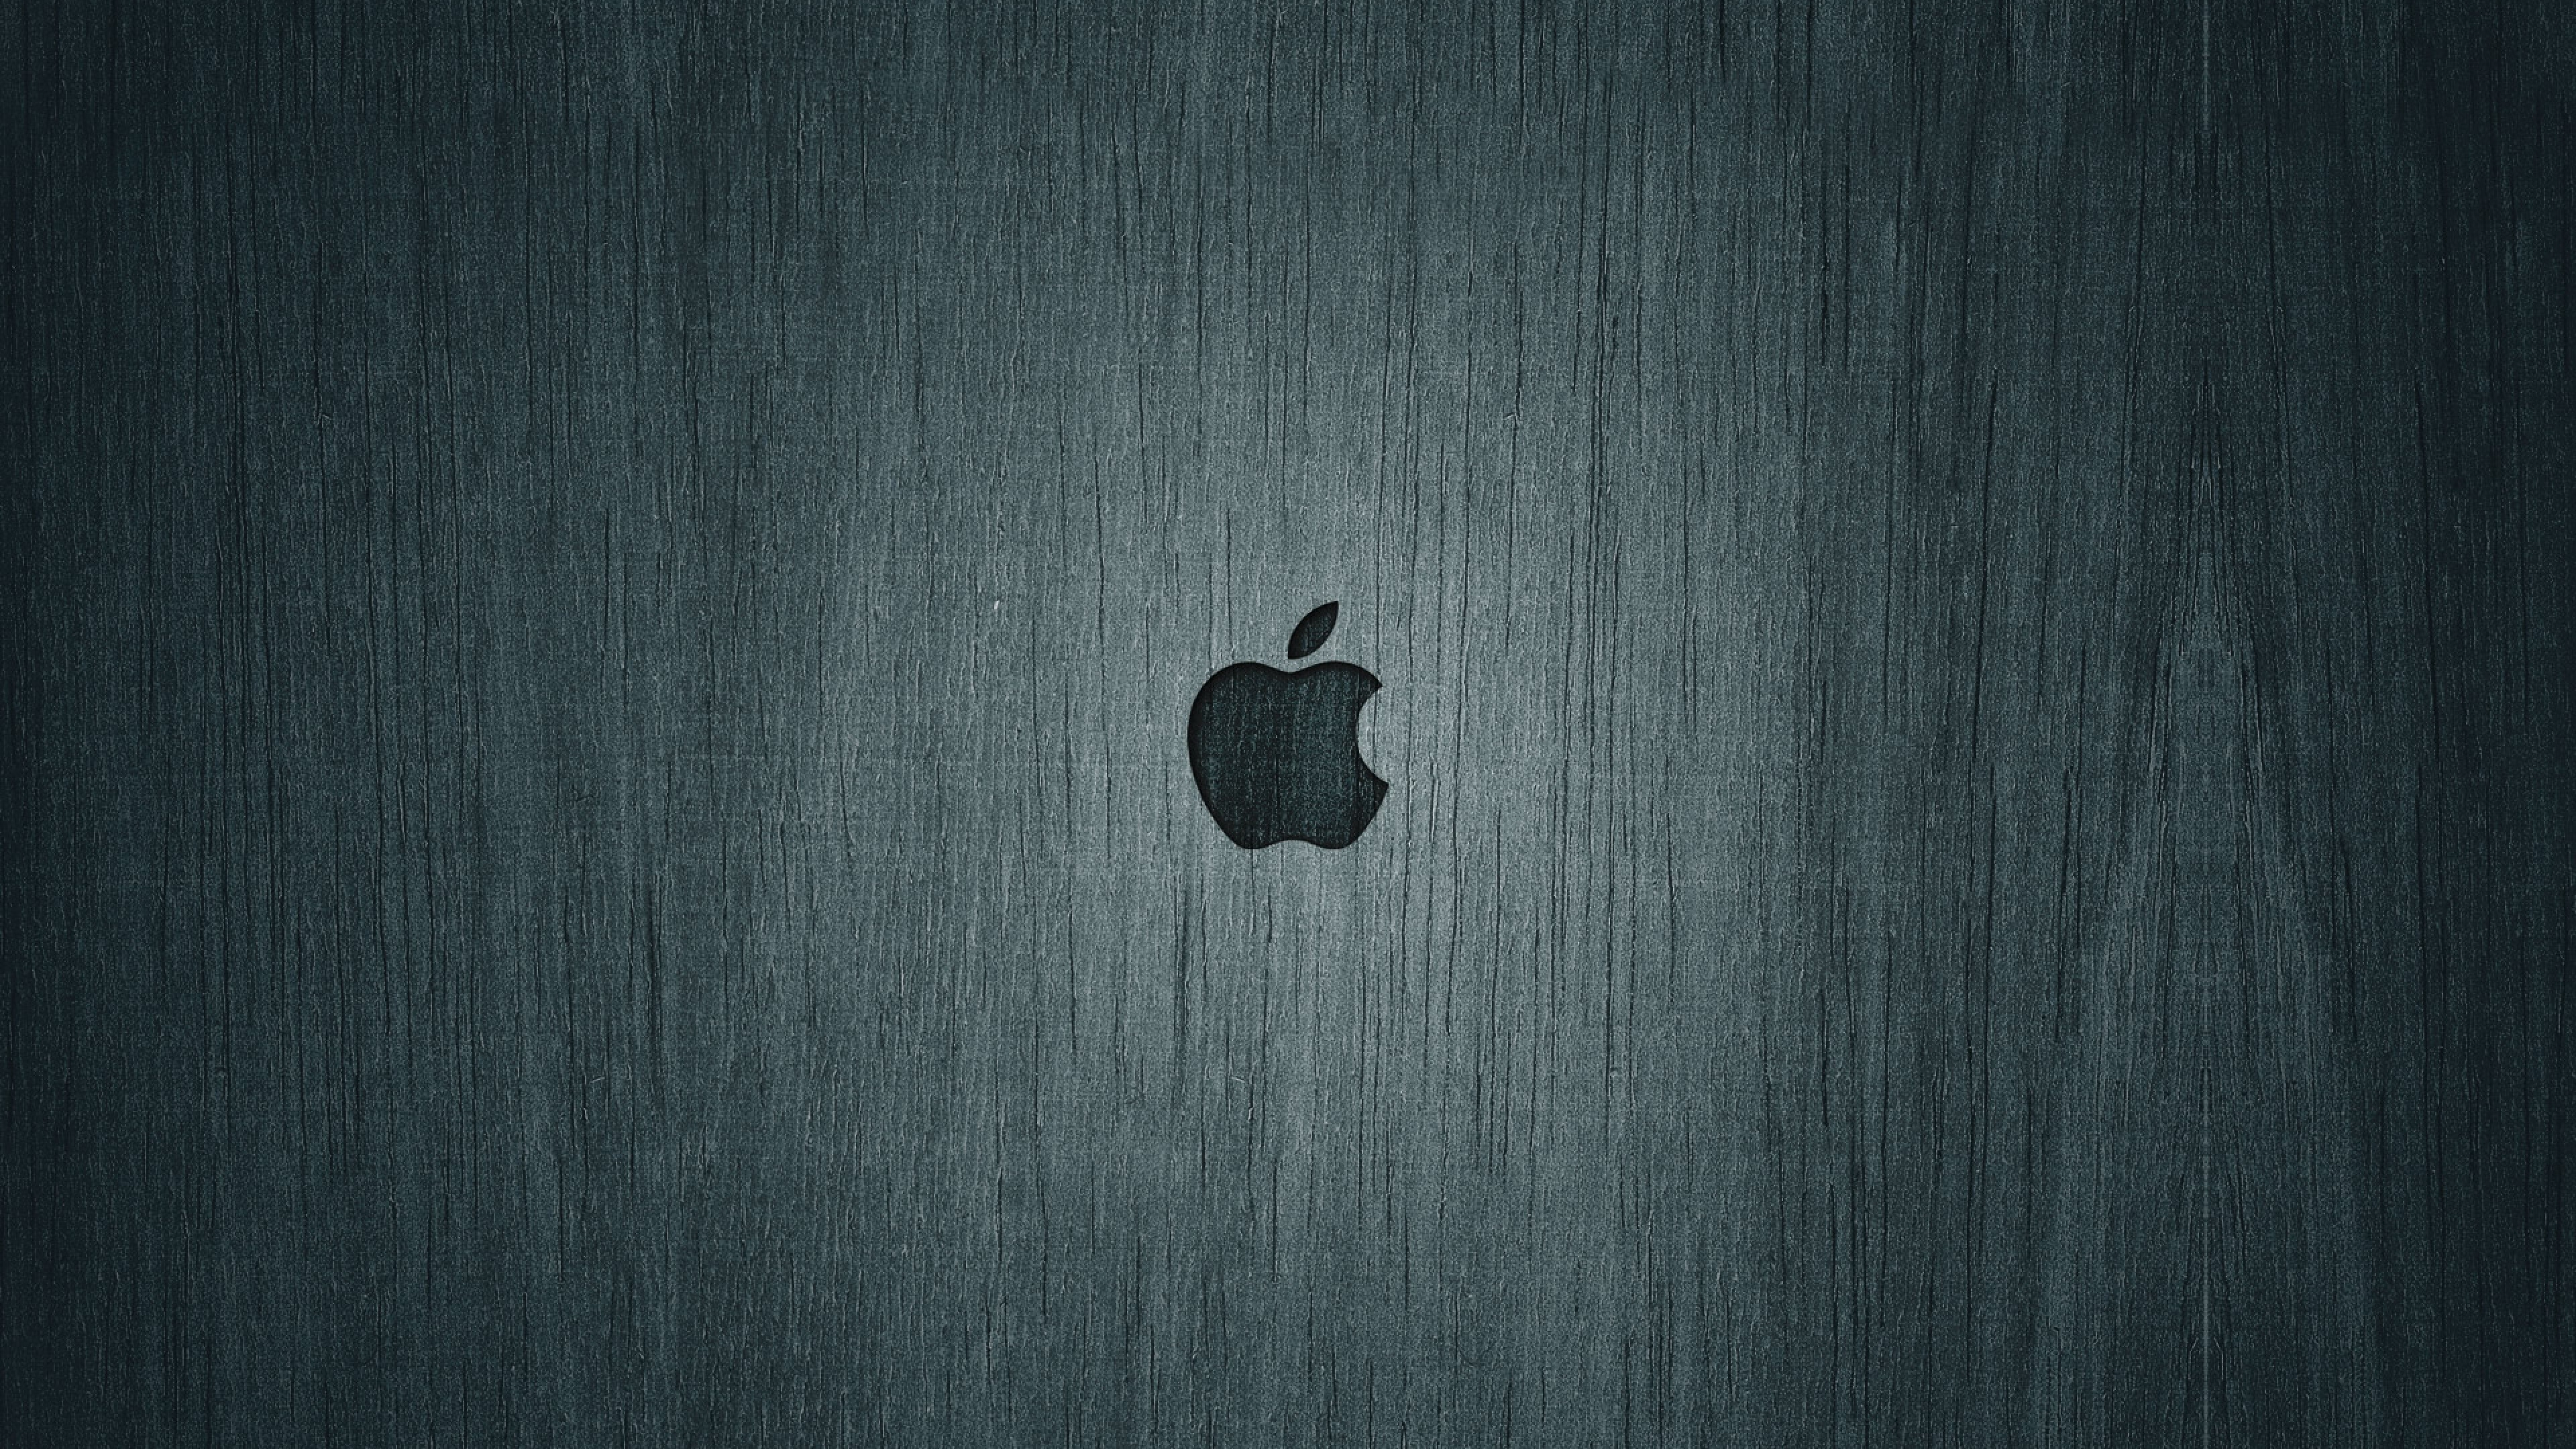 Apple Mac Background Black Brand Logo Wallpaper Background 4K 3840x2160